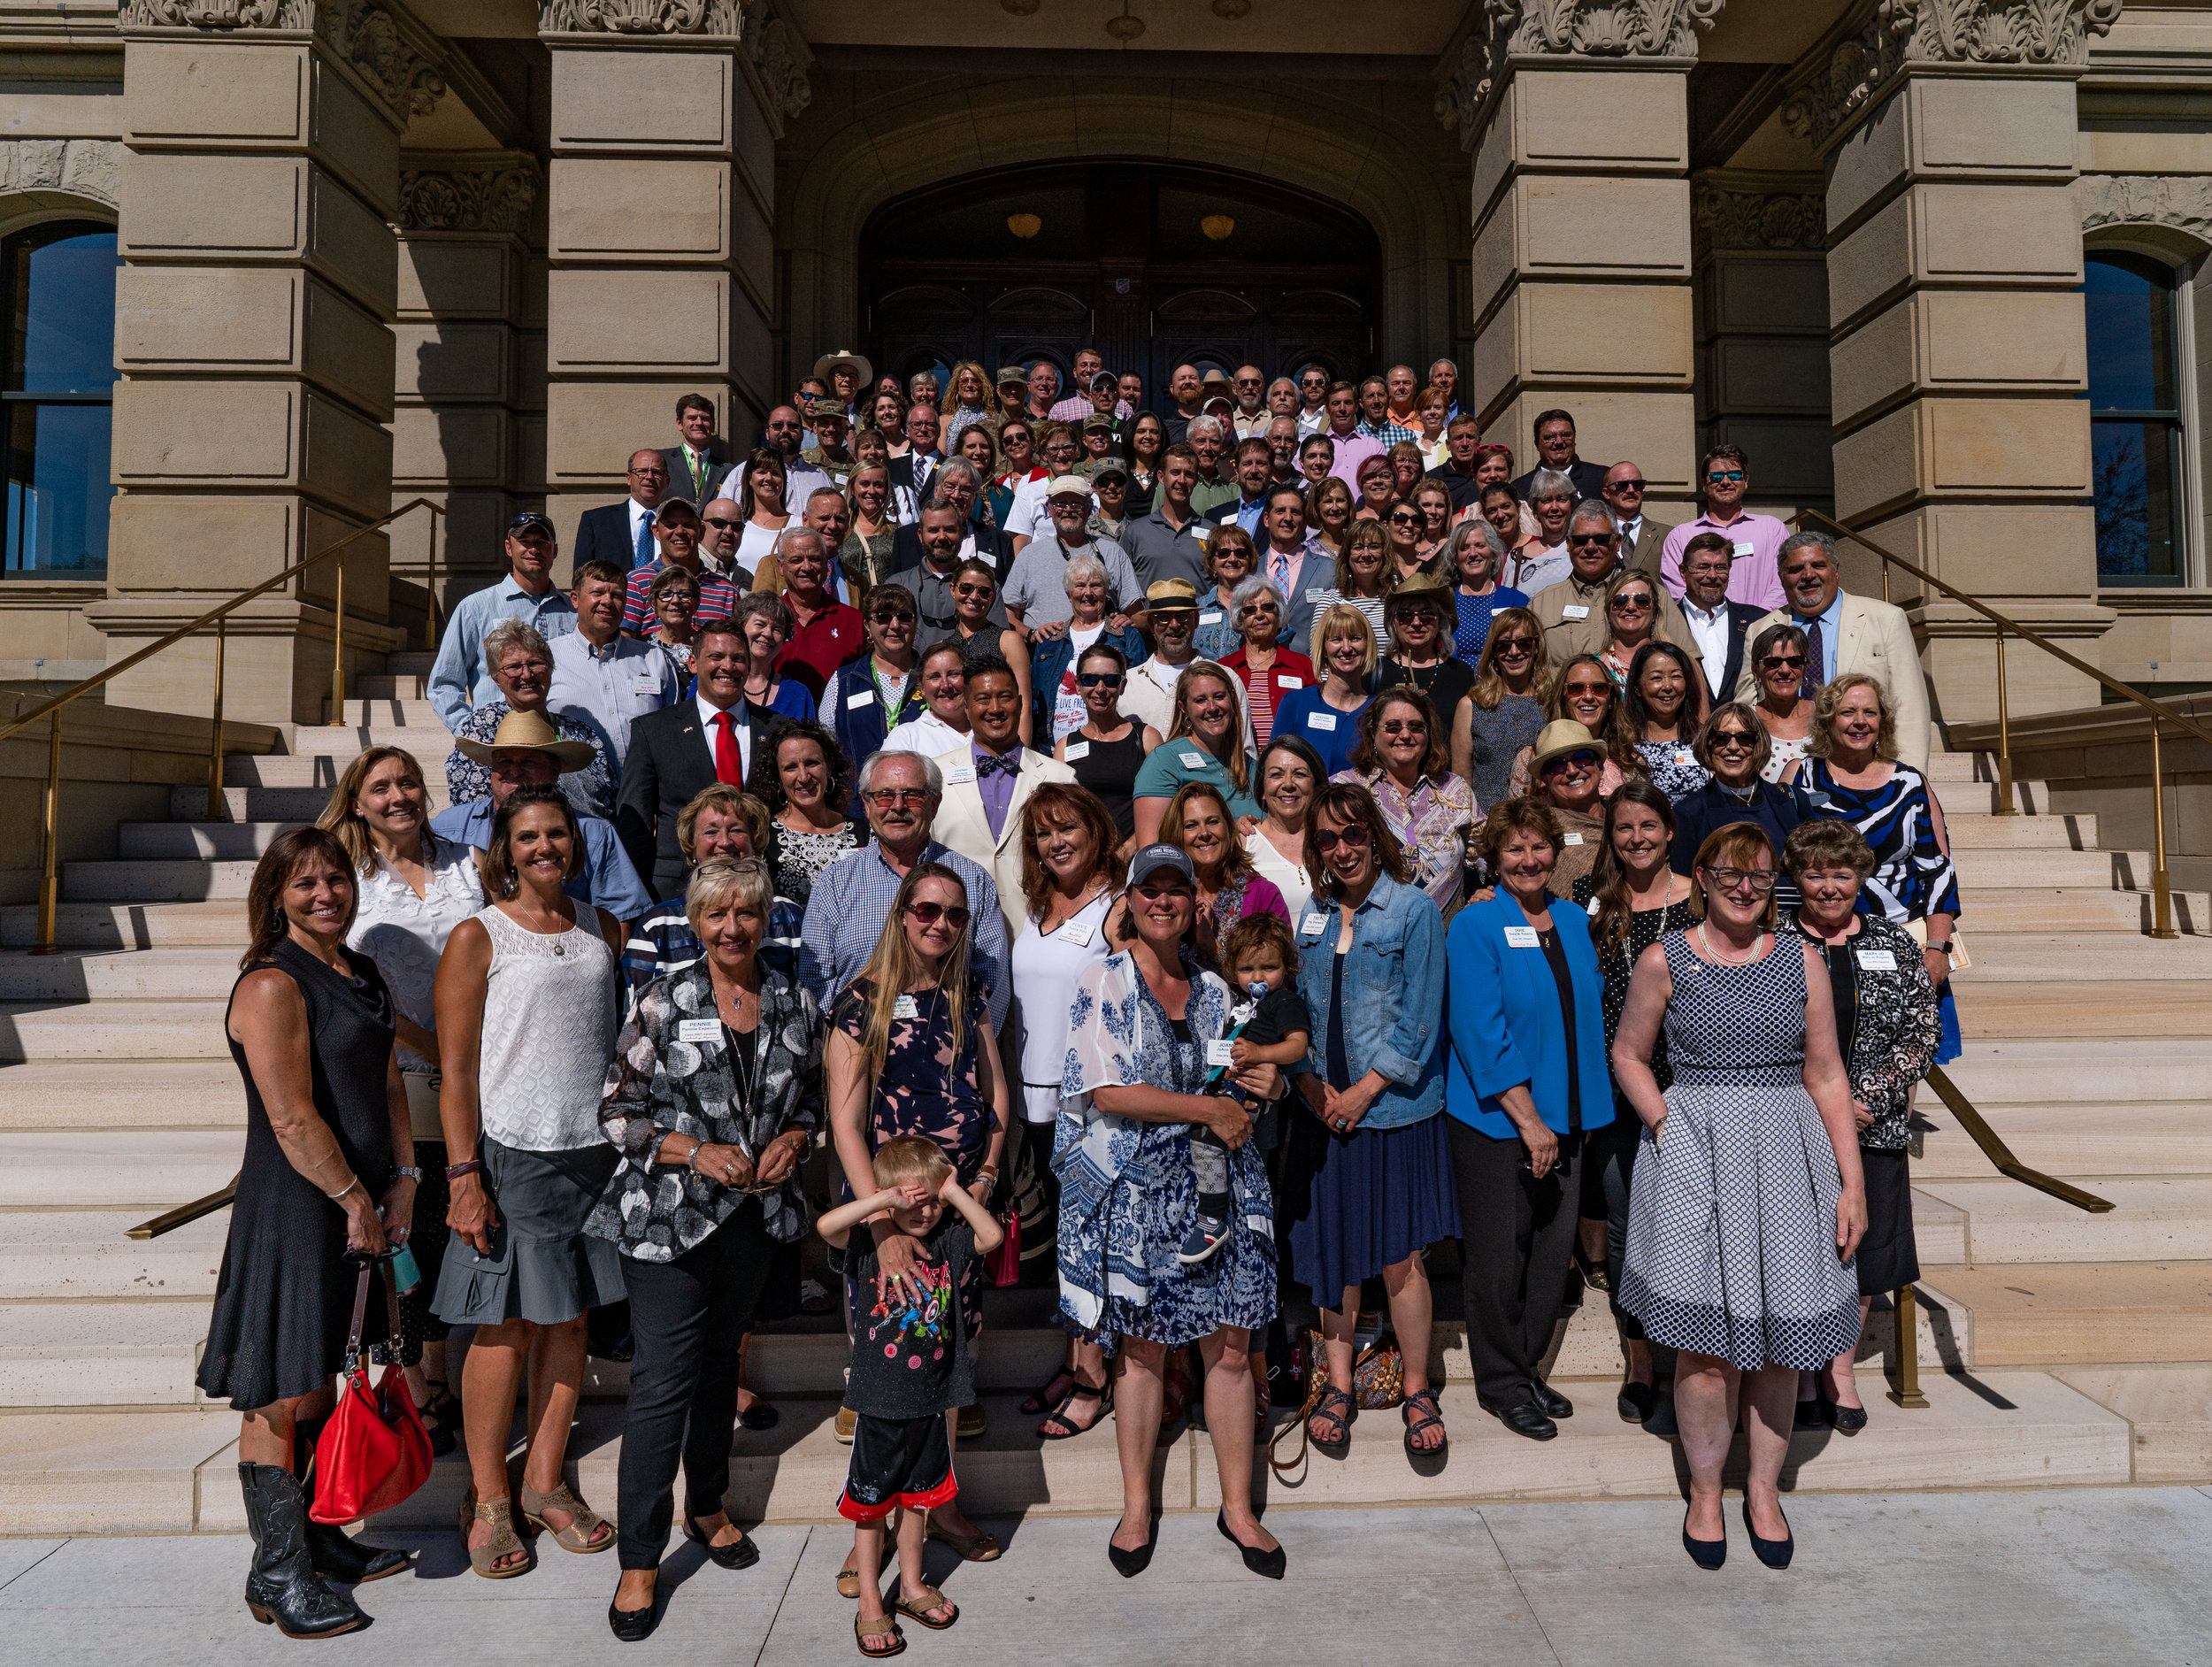 We are incredibly proud of the 804 Leadership Wyoming Alumni who serve as leaders in their communities, state, and beyond. We have many ways for Alumni to stay involved in Leadership Wyoming through our current sessions as well as specific alumni events.